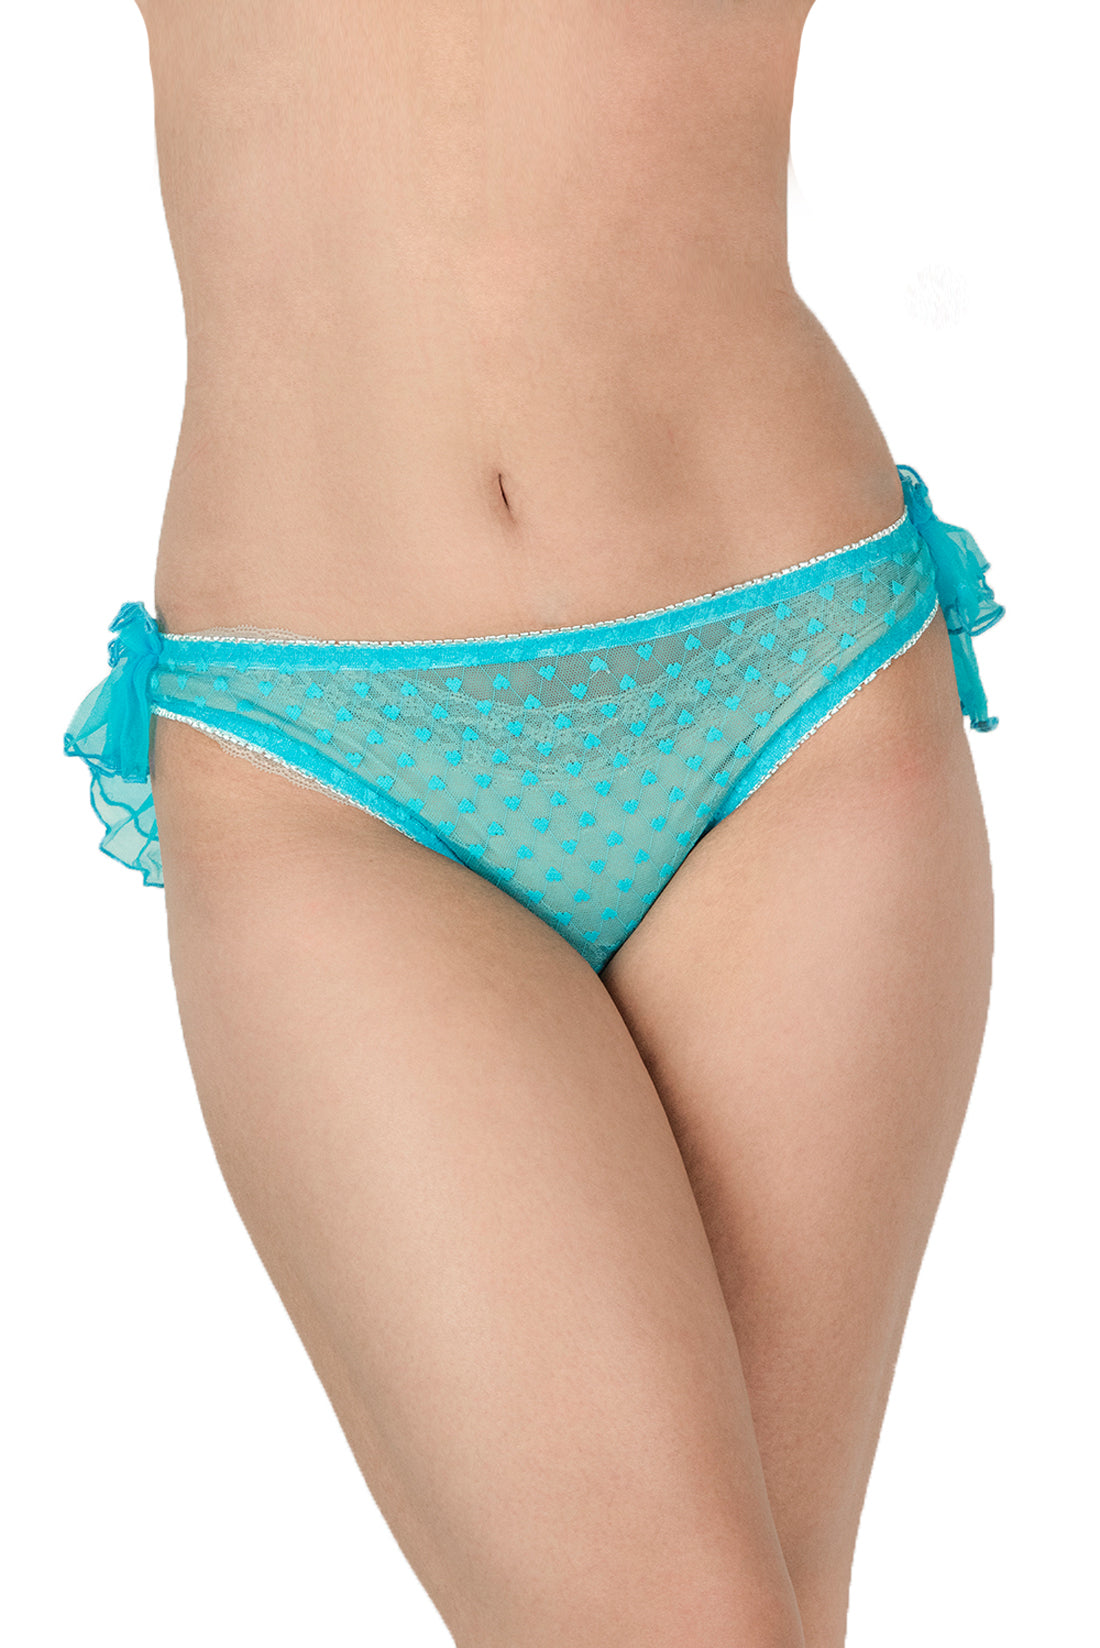 See-through knickers with polka dots and layered ruffles at back